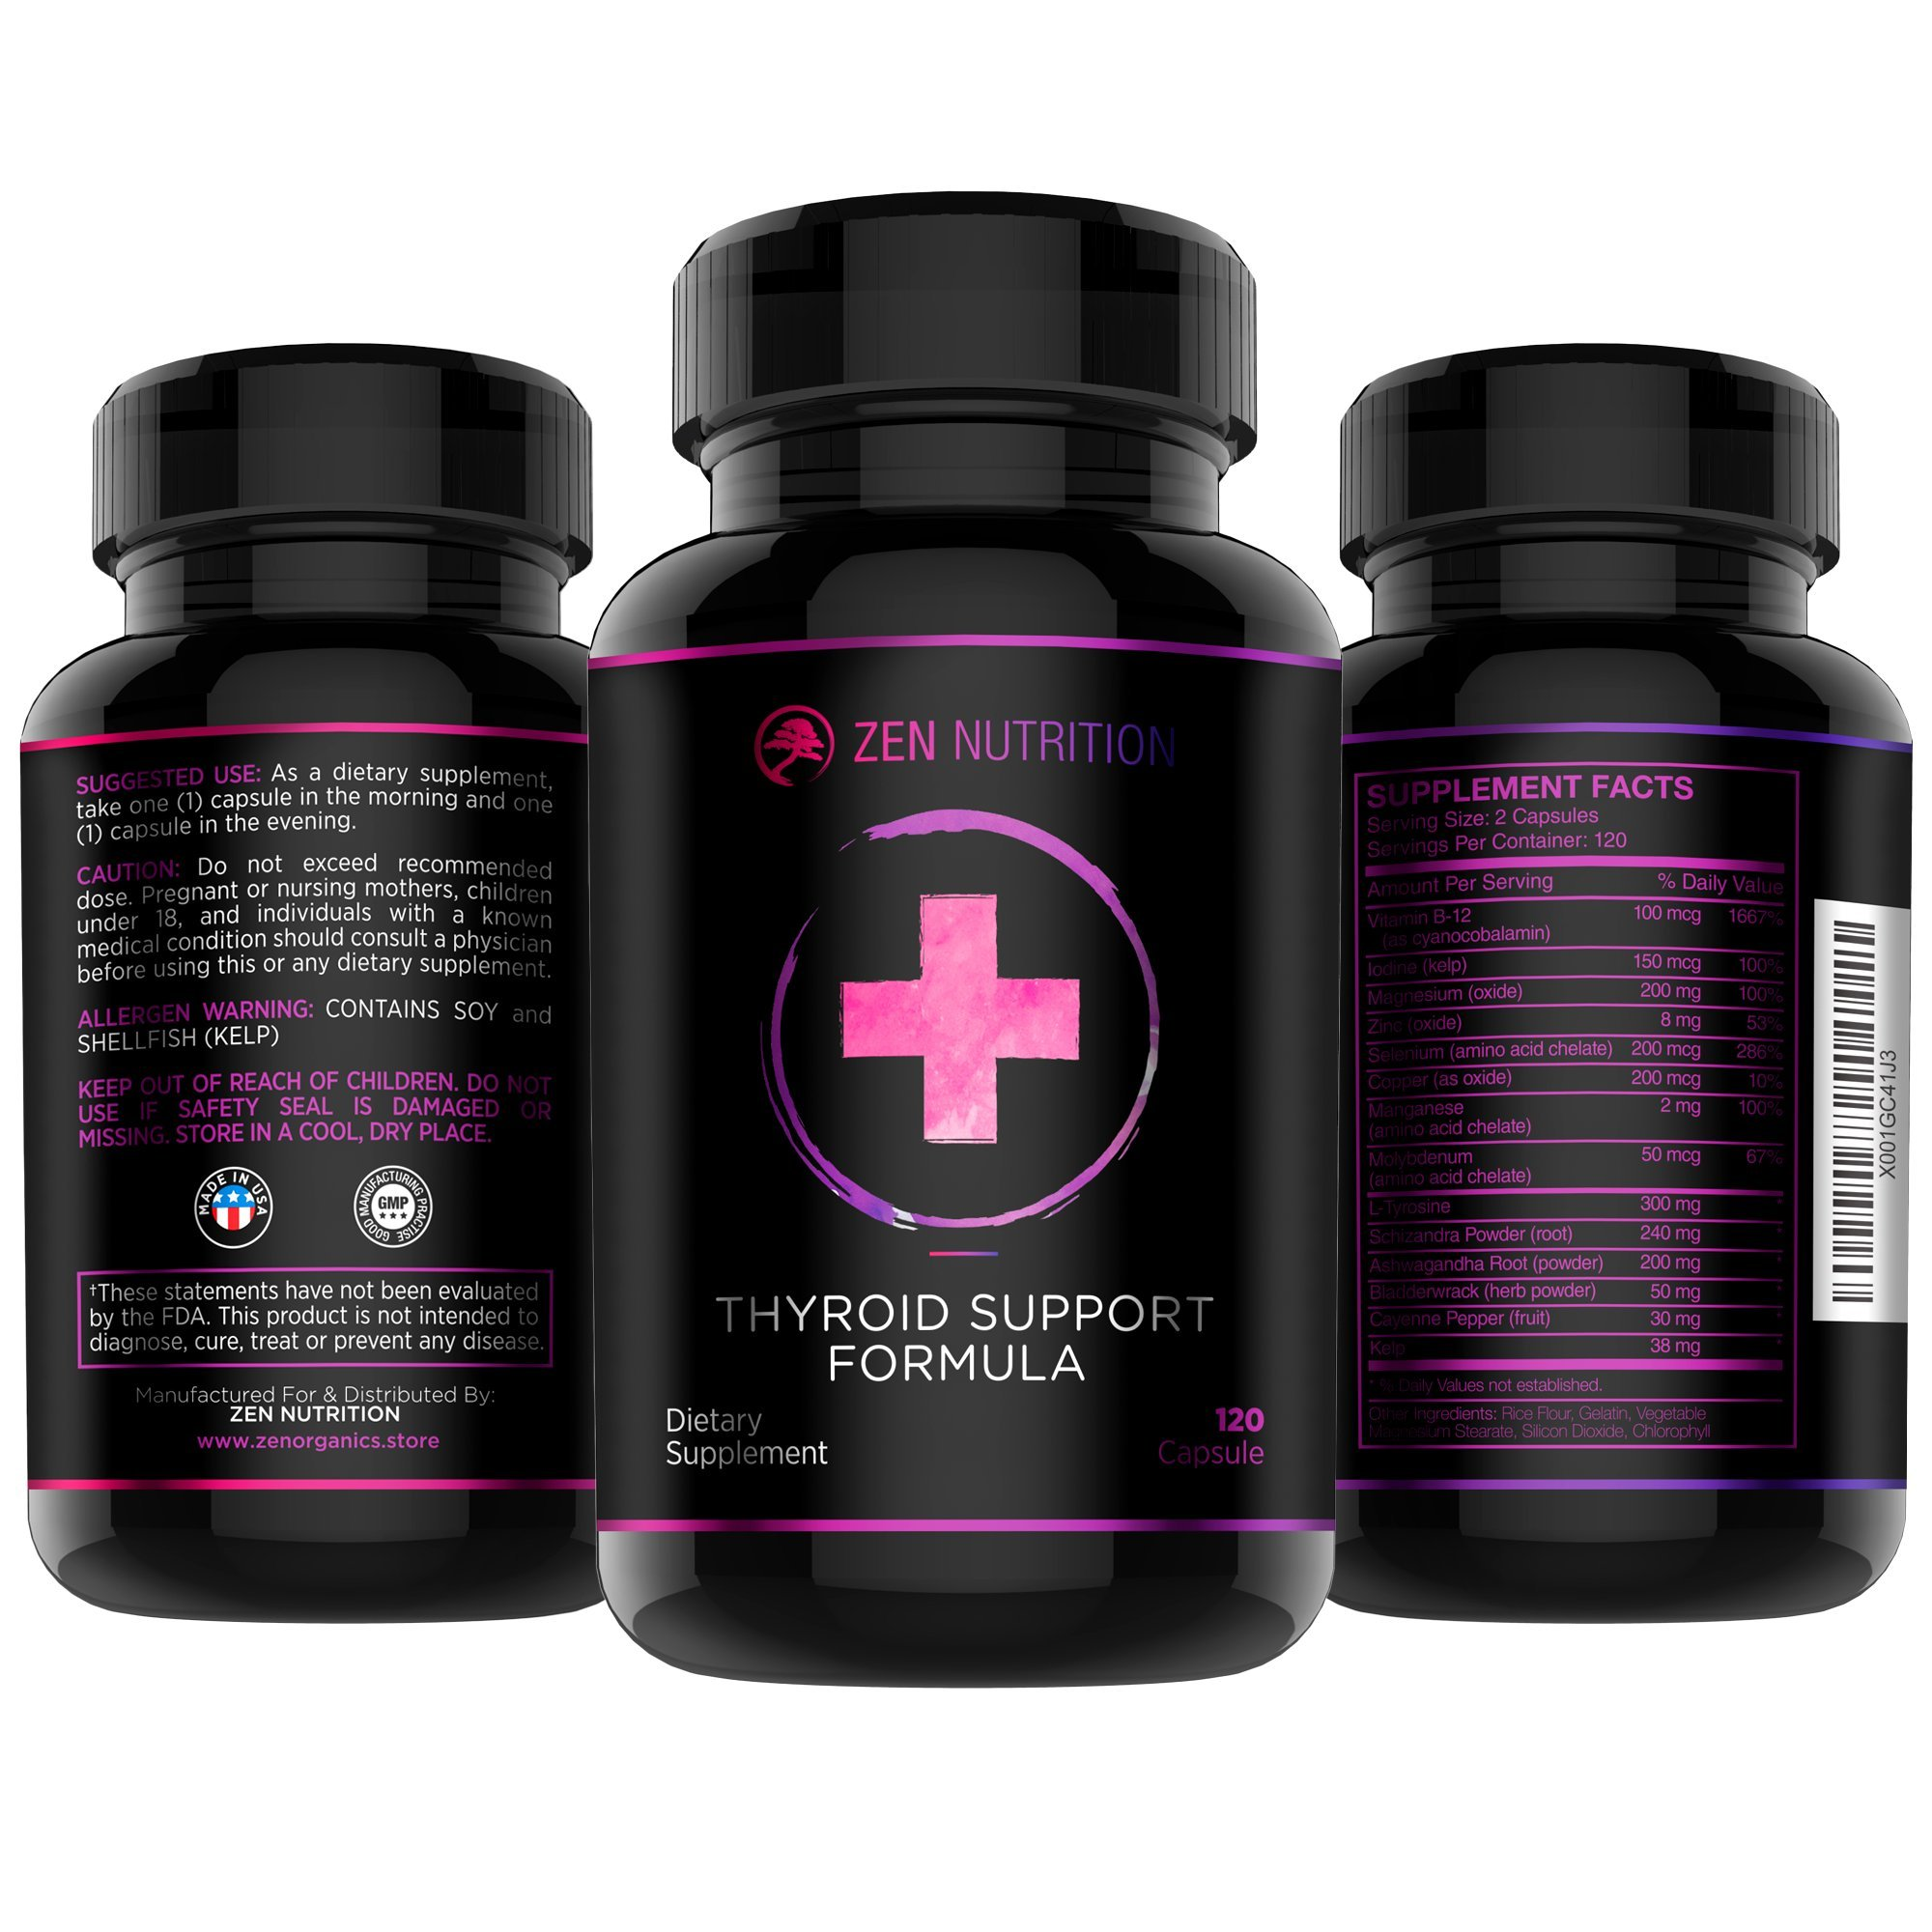 Thyroid Support Supplement   Unique Formula Forged for Focus, Energy and Metabolism   Vitamin B12 , Zinc, Ashwagandha, Iodine - Gluten Free, Made in the USA By Zen Nutrition